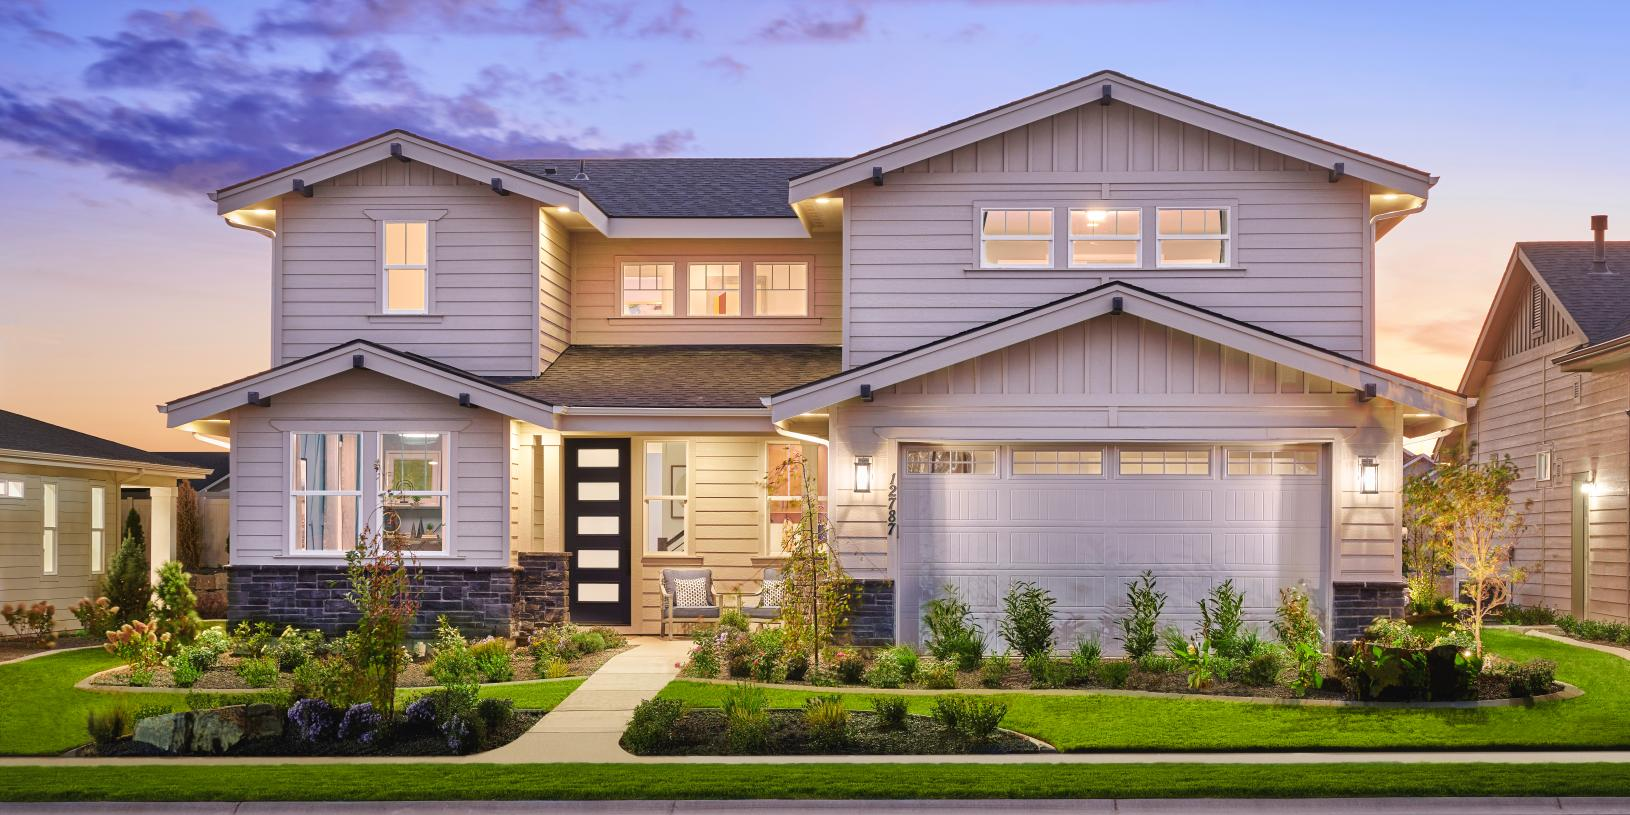 Luxurious and welcoming exterior finishes